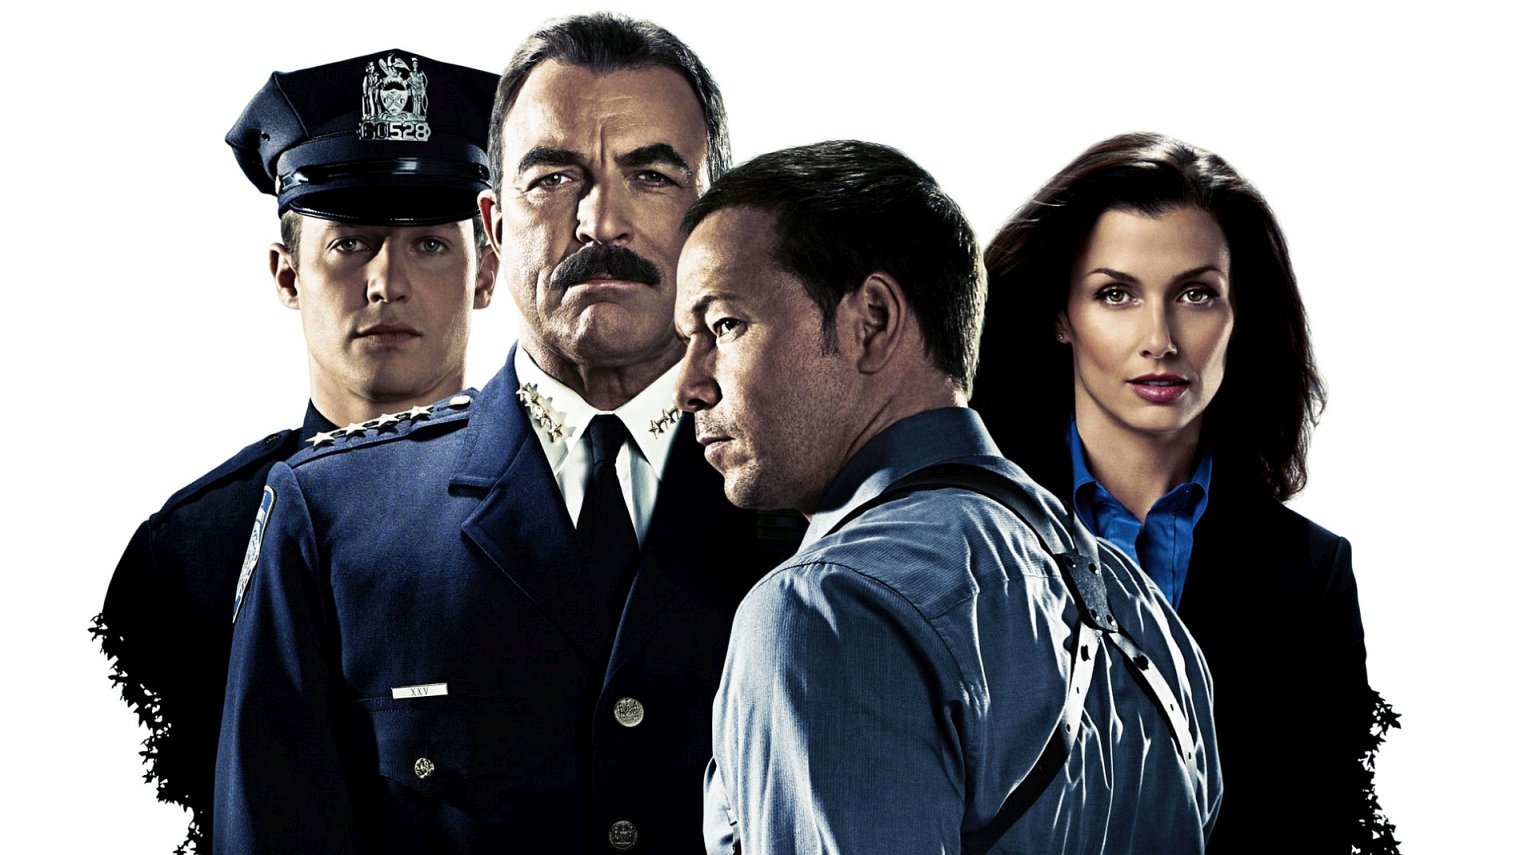 Blue Bloods S8 episode 20 watch online